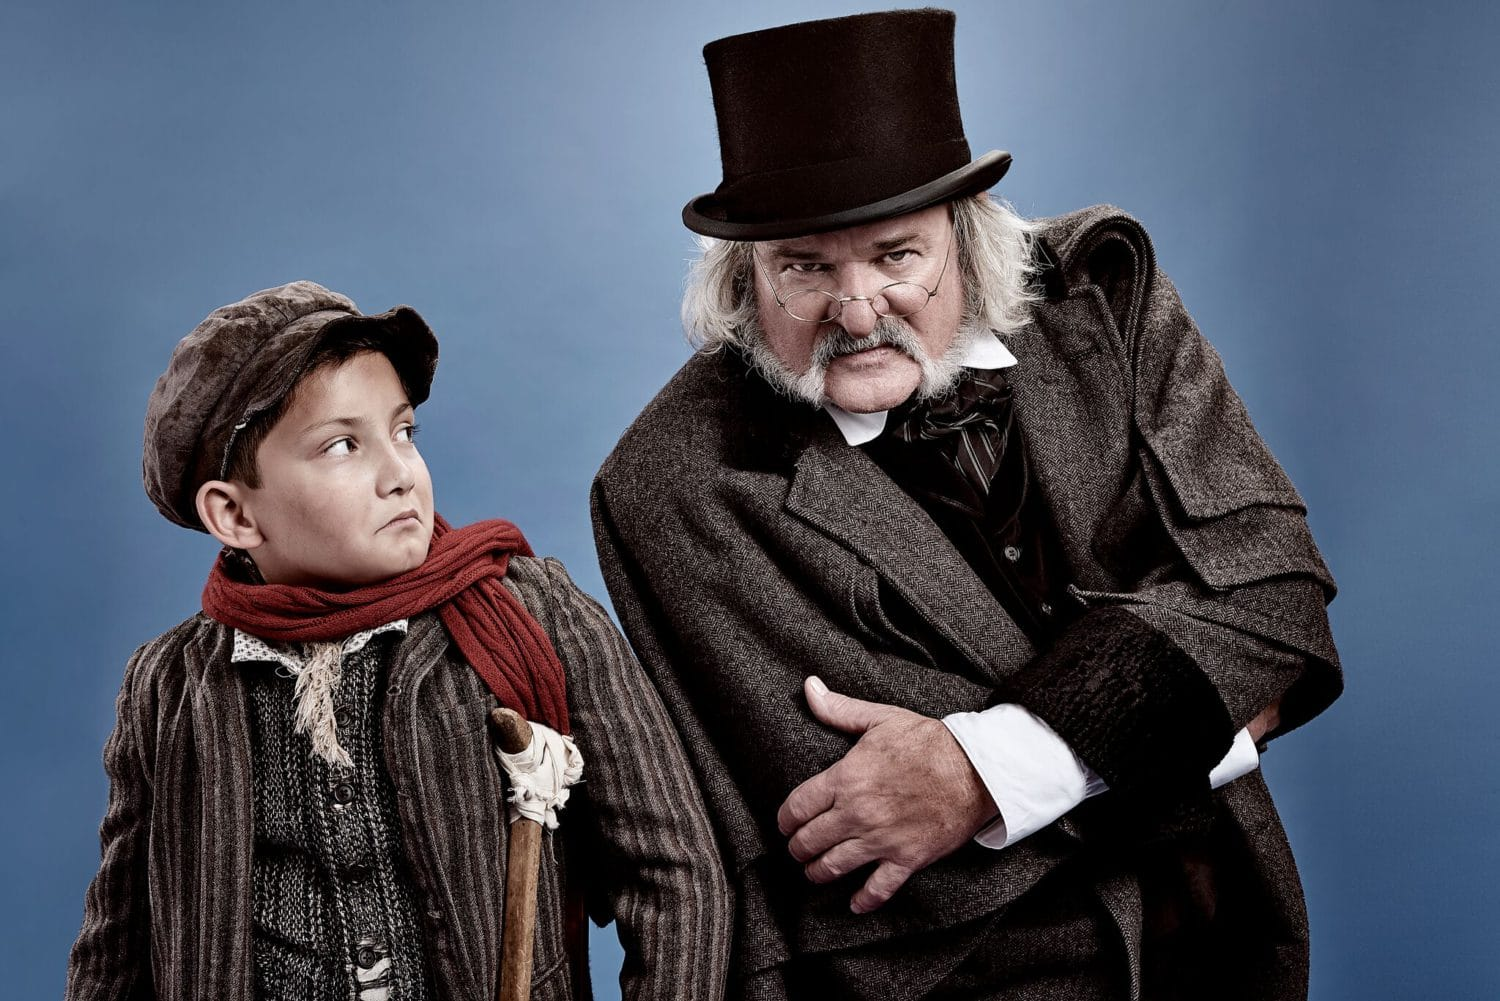 Christmas Carol Scrooge.Trending In December Ebenezer Scrooge Focus Daily News